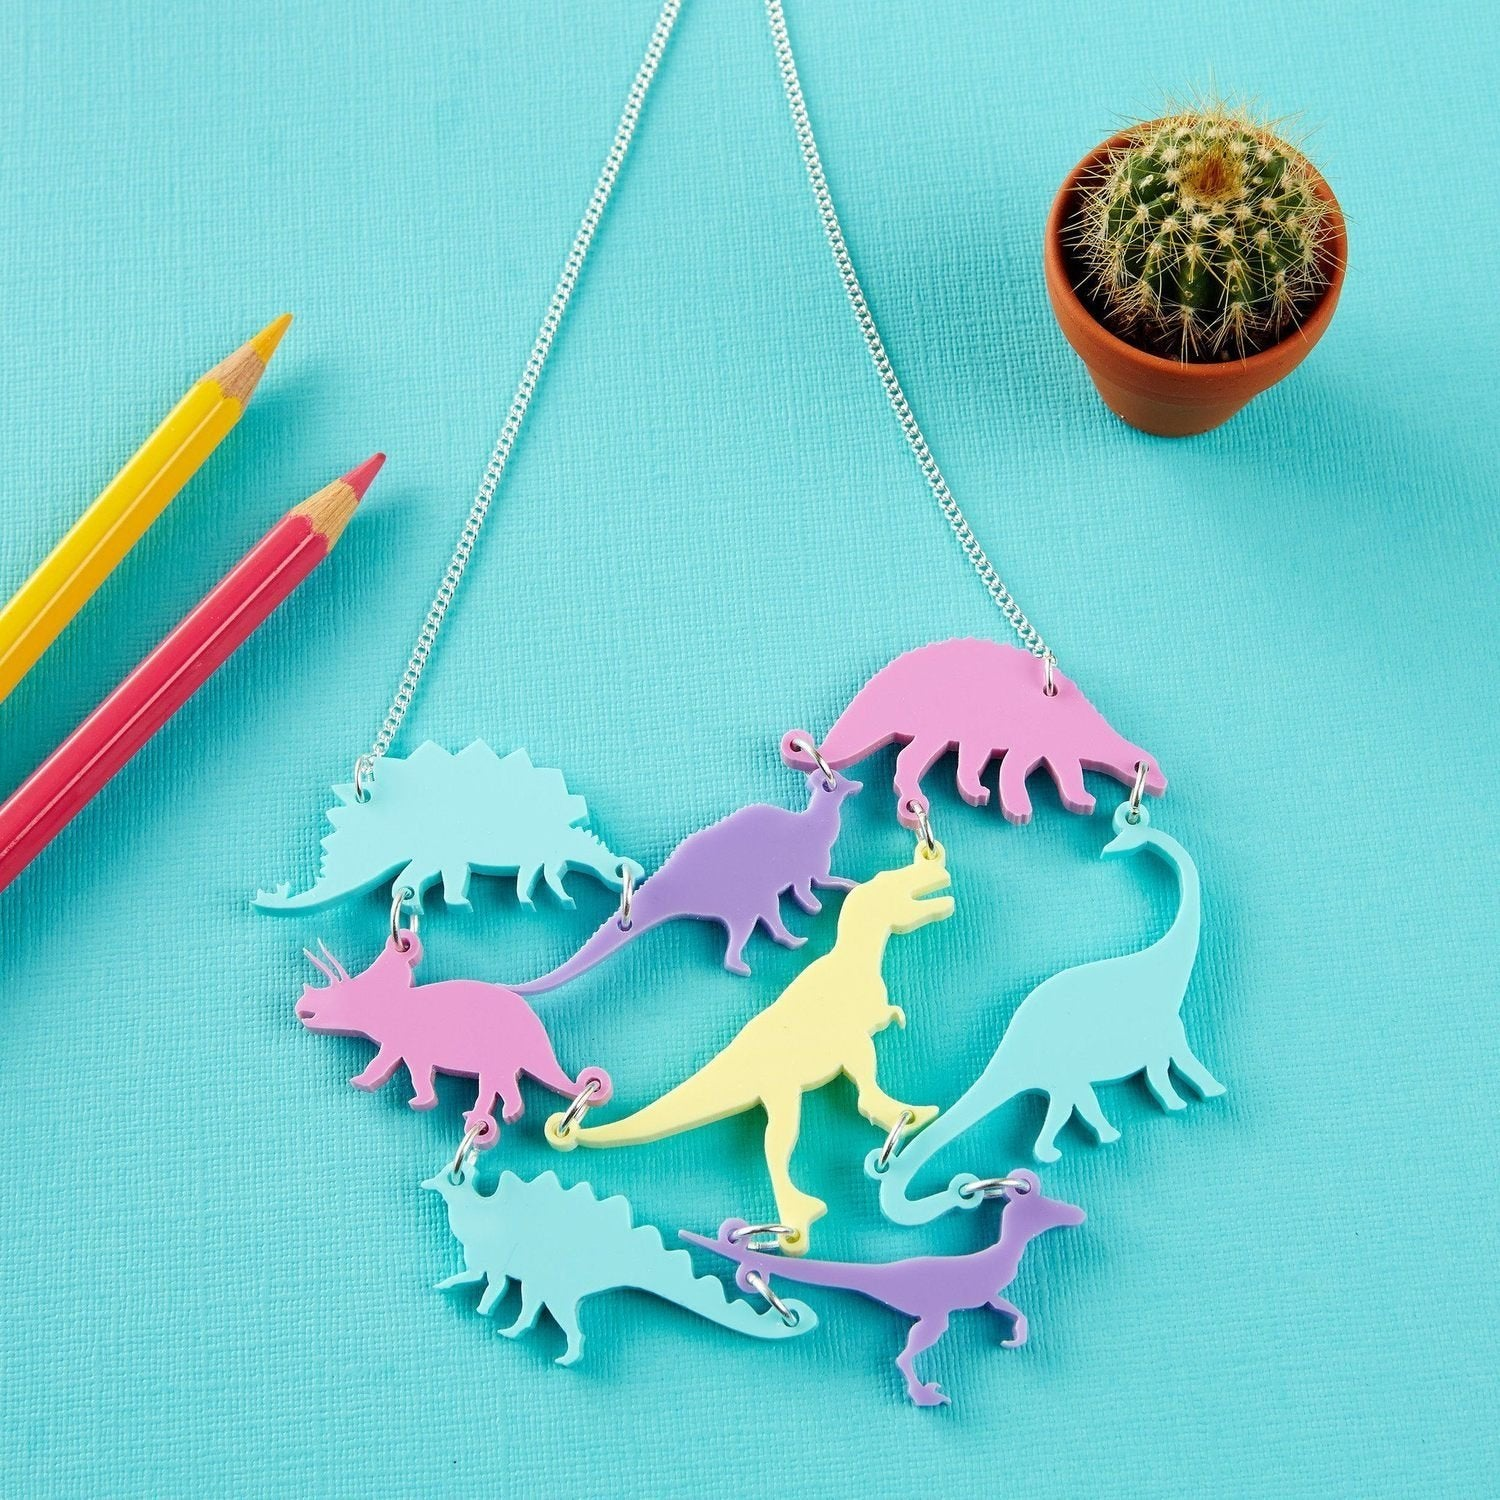 Pastel Dinosaur Gang Necklace by Punky Pins - Minimum Mouse